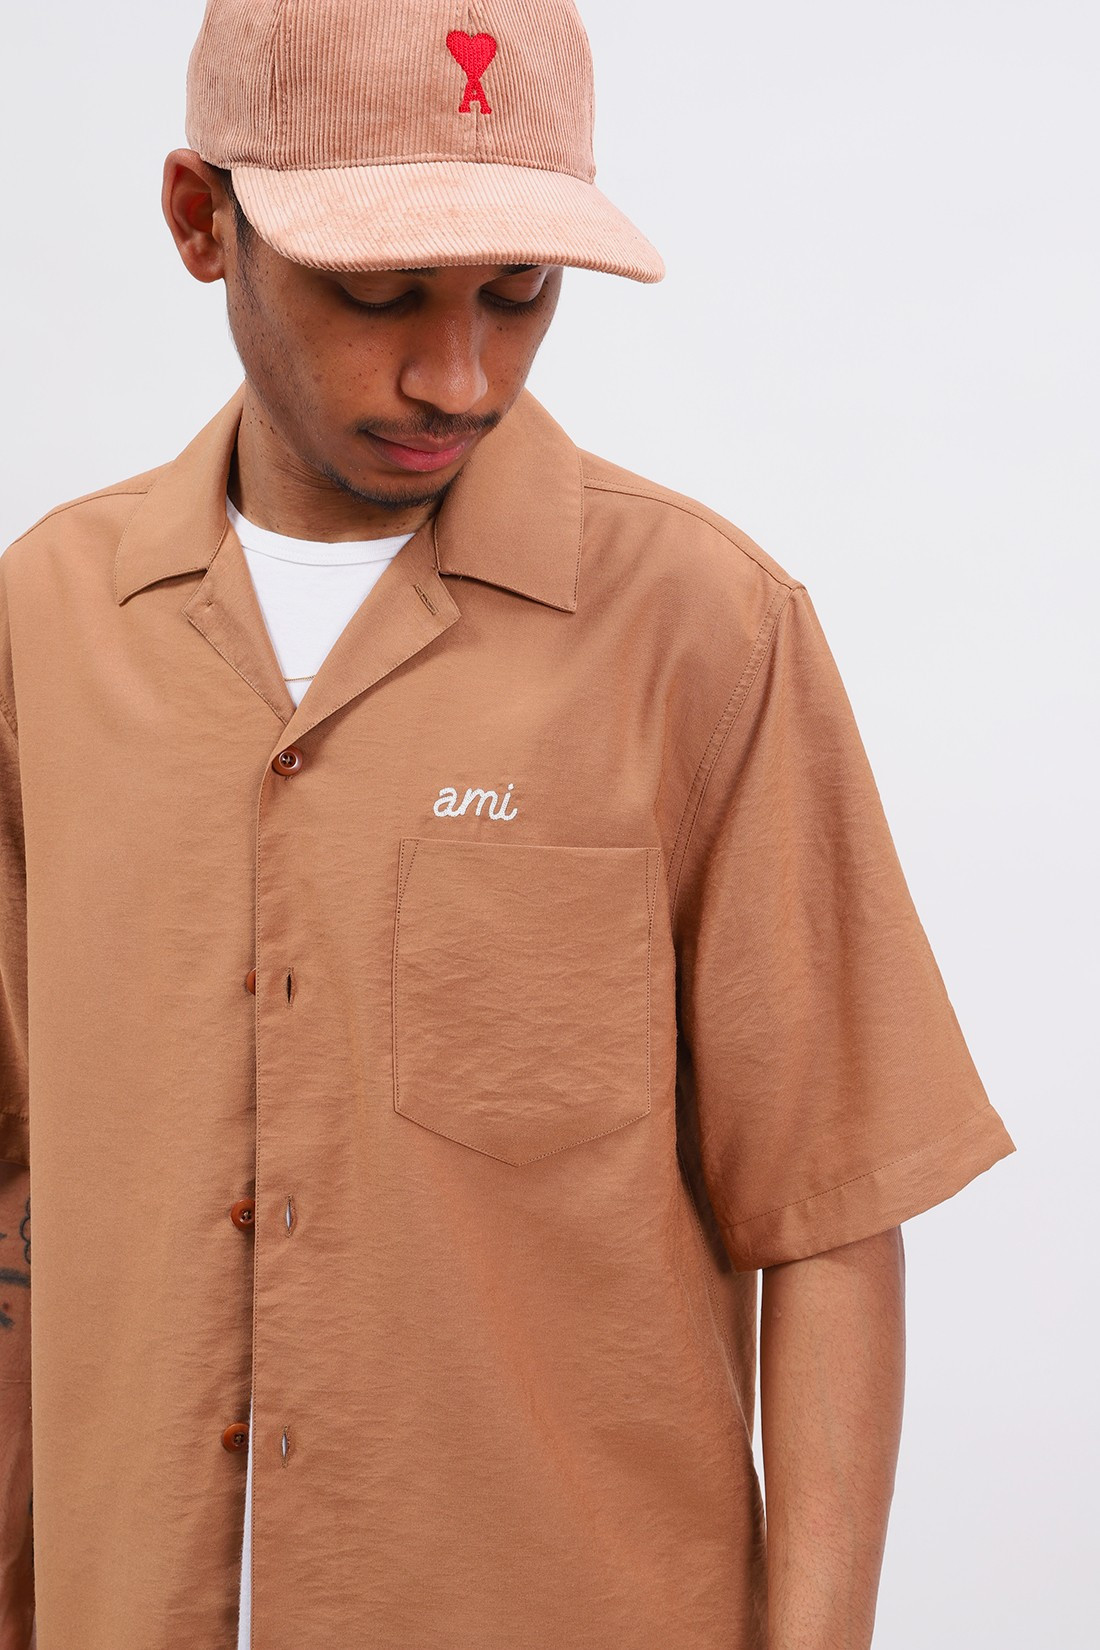 AMI / Chemise broderie ami Beige